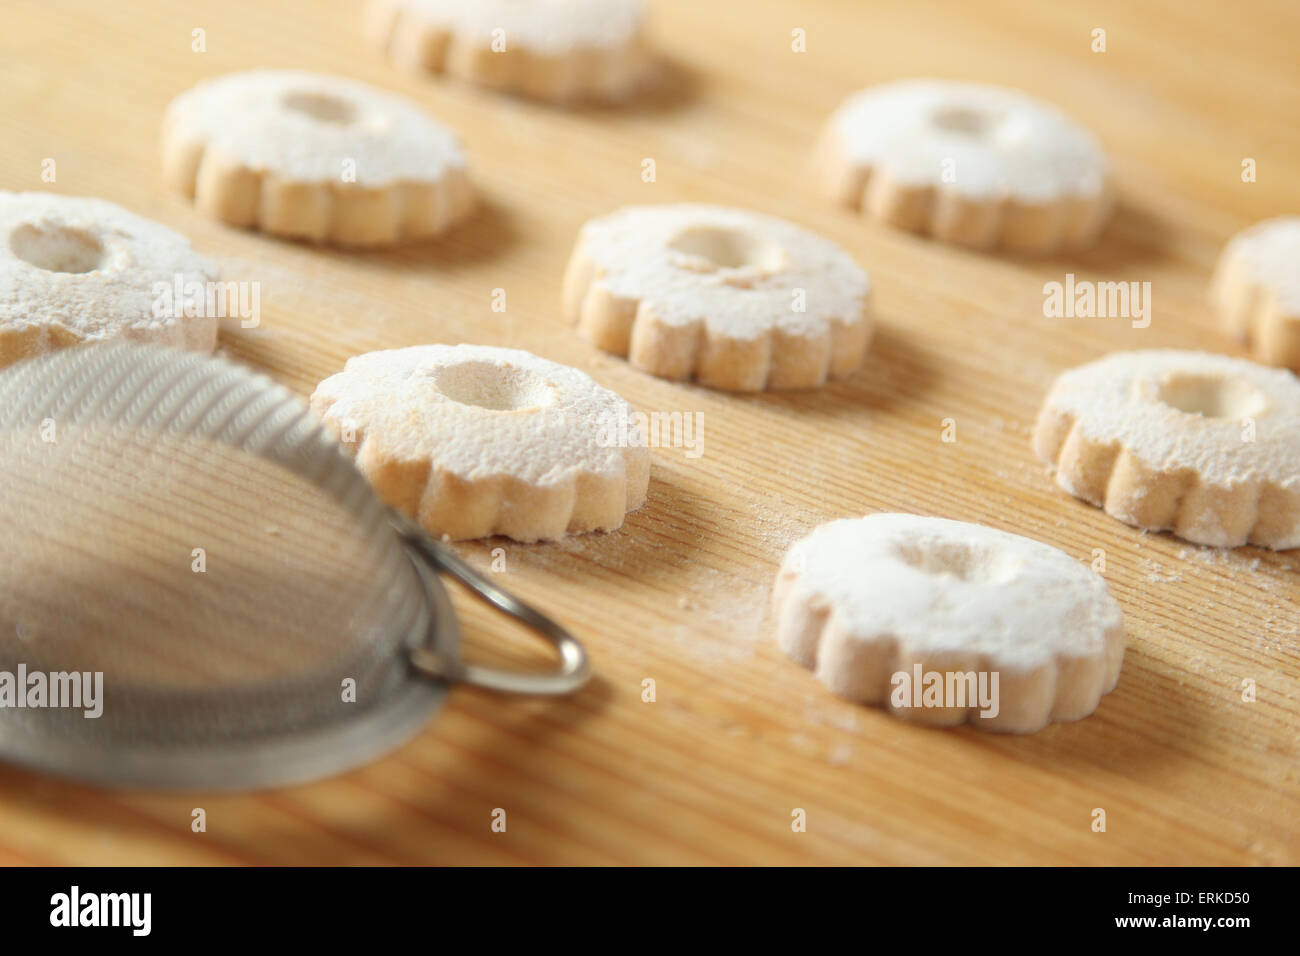 Regular arrangement of italian canestrelli cookies on a raw wooden table with a strainer used to sprinkle icing - Stock Image